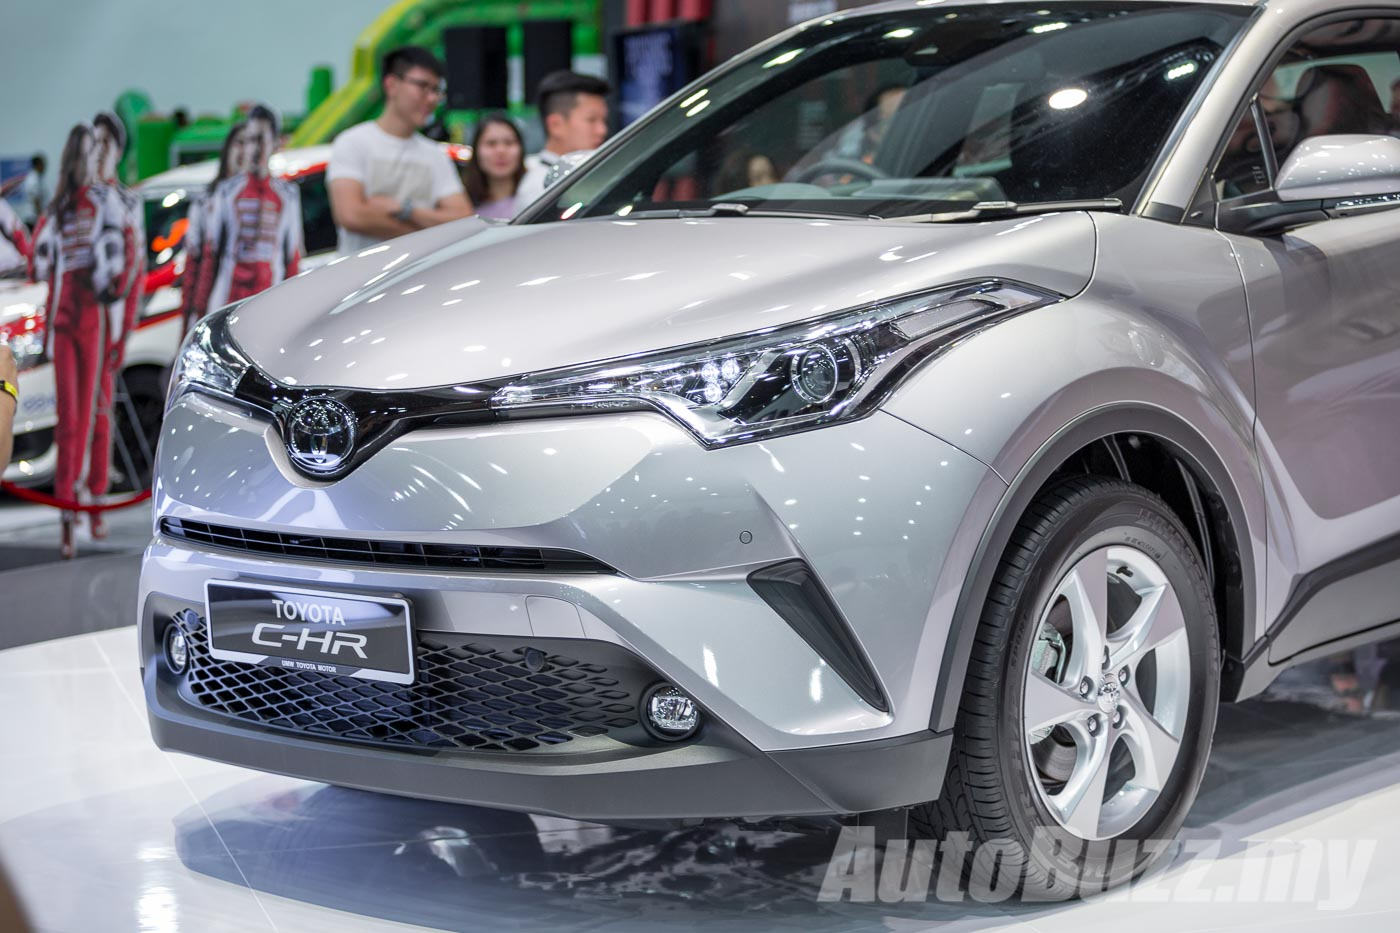 toyota c-hr finally previewed in malaysia, looks uber good in the